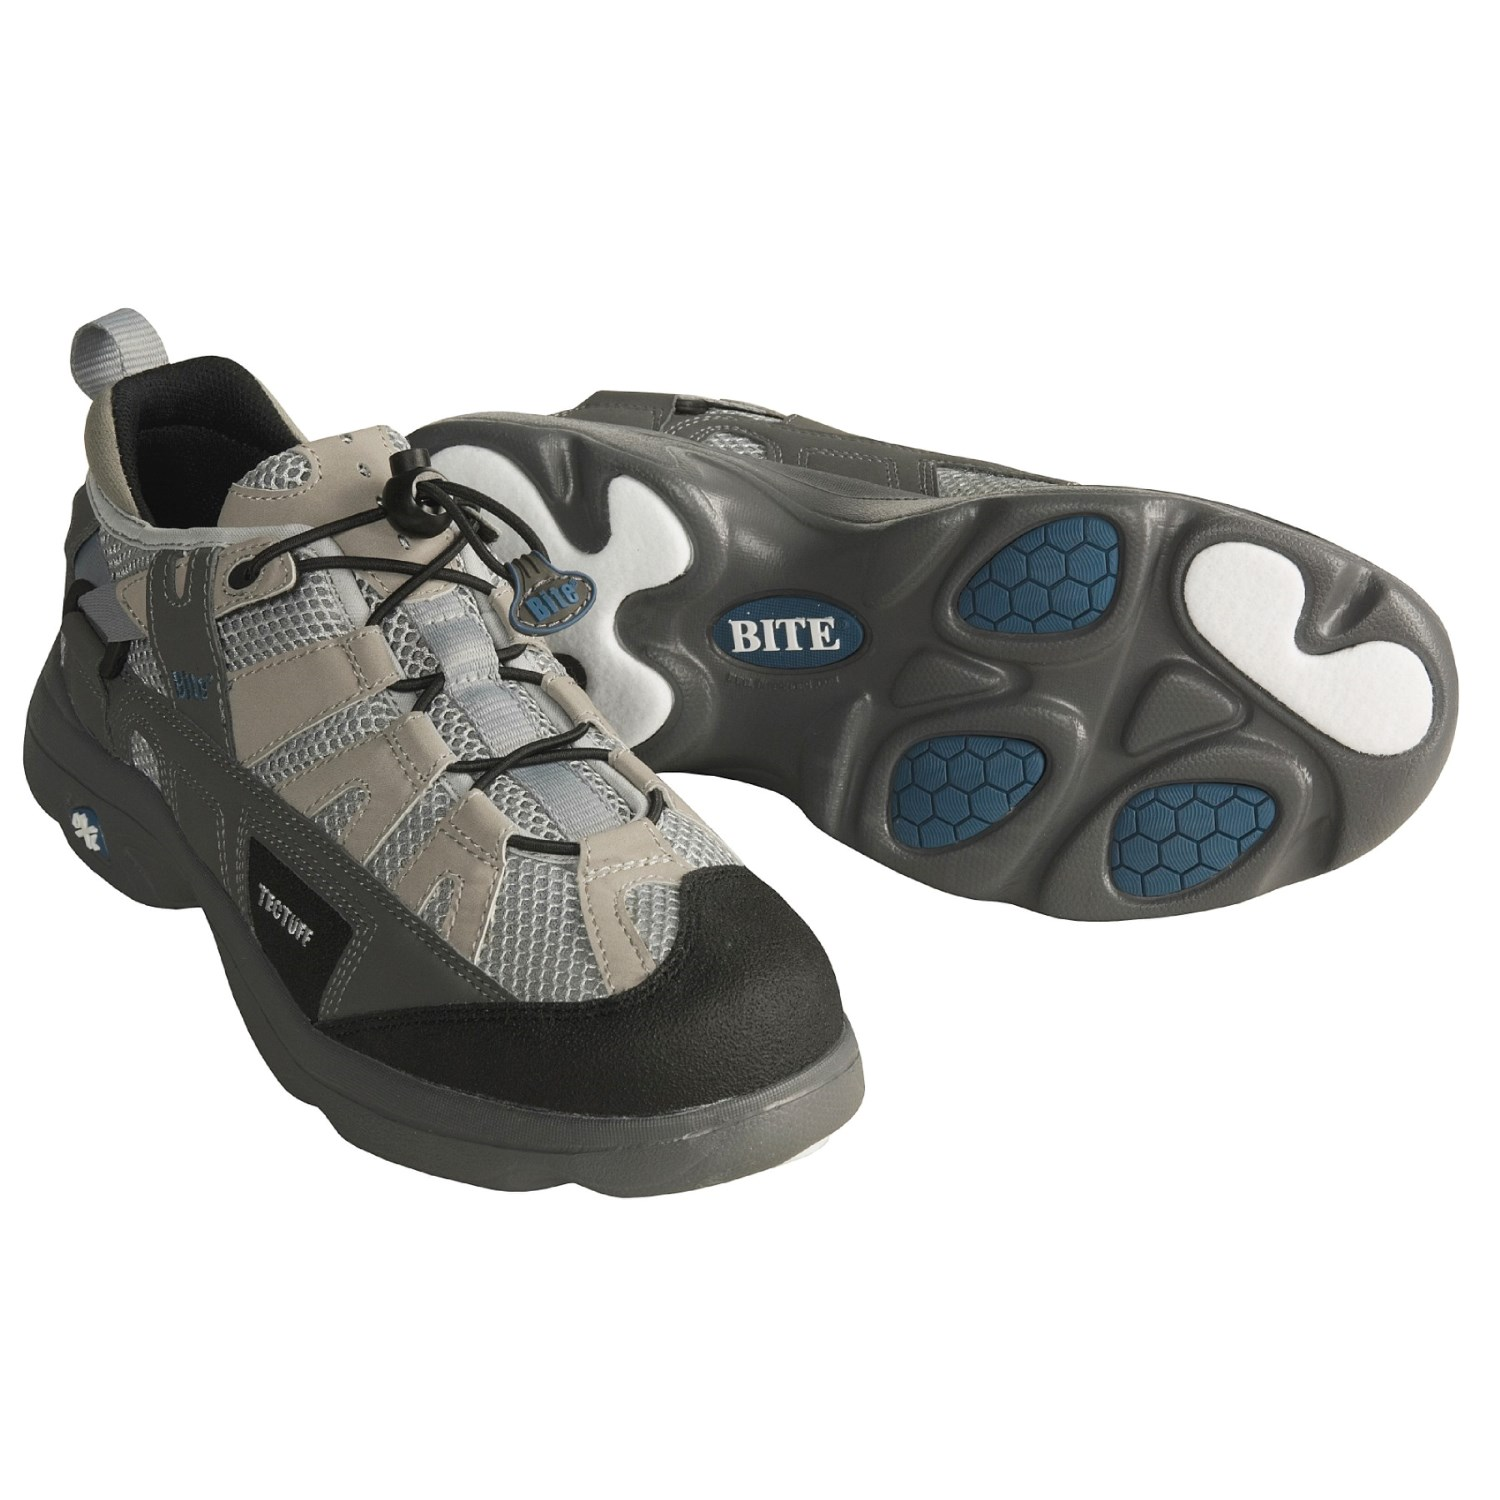 Bite shoat low top water shoes for men 96916 save 62 for Best fishing shoes